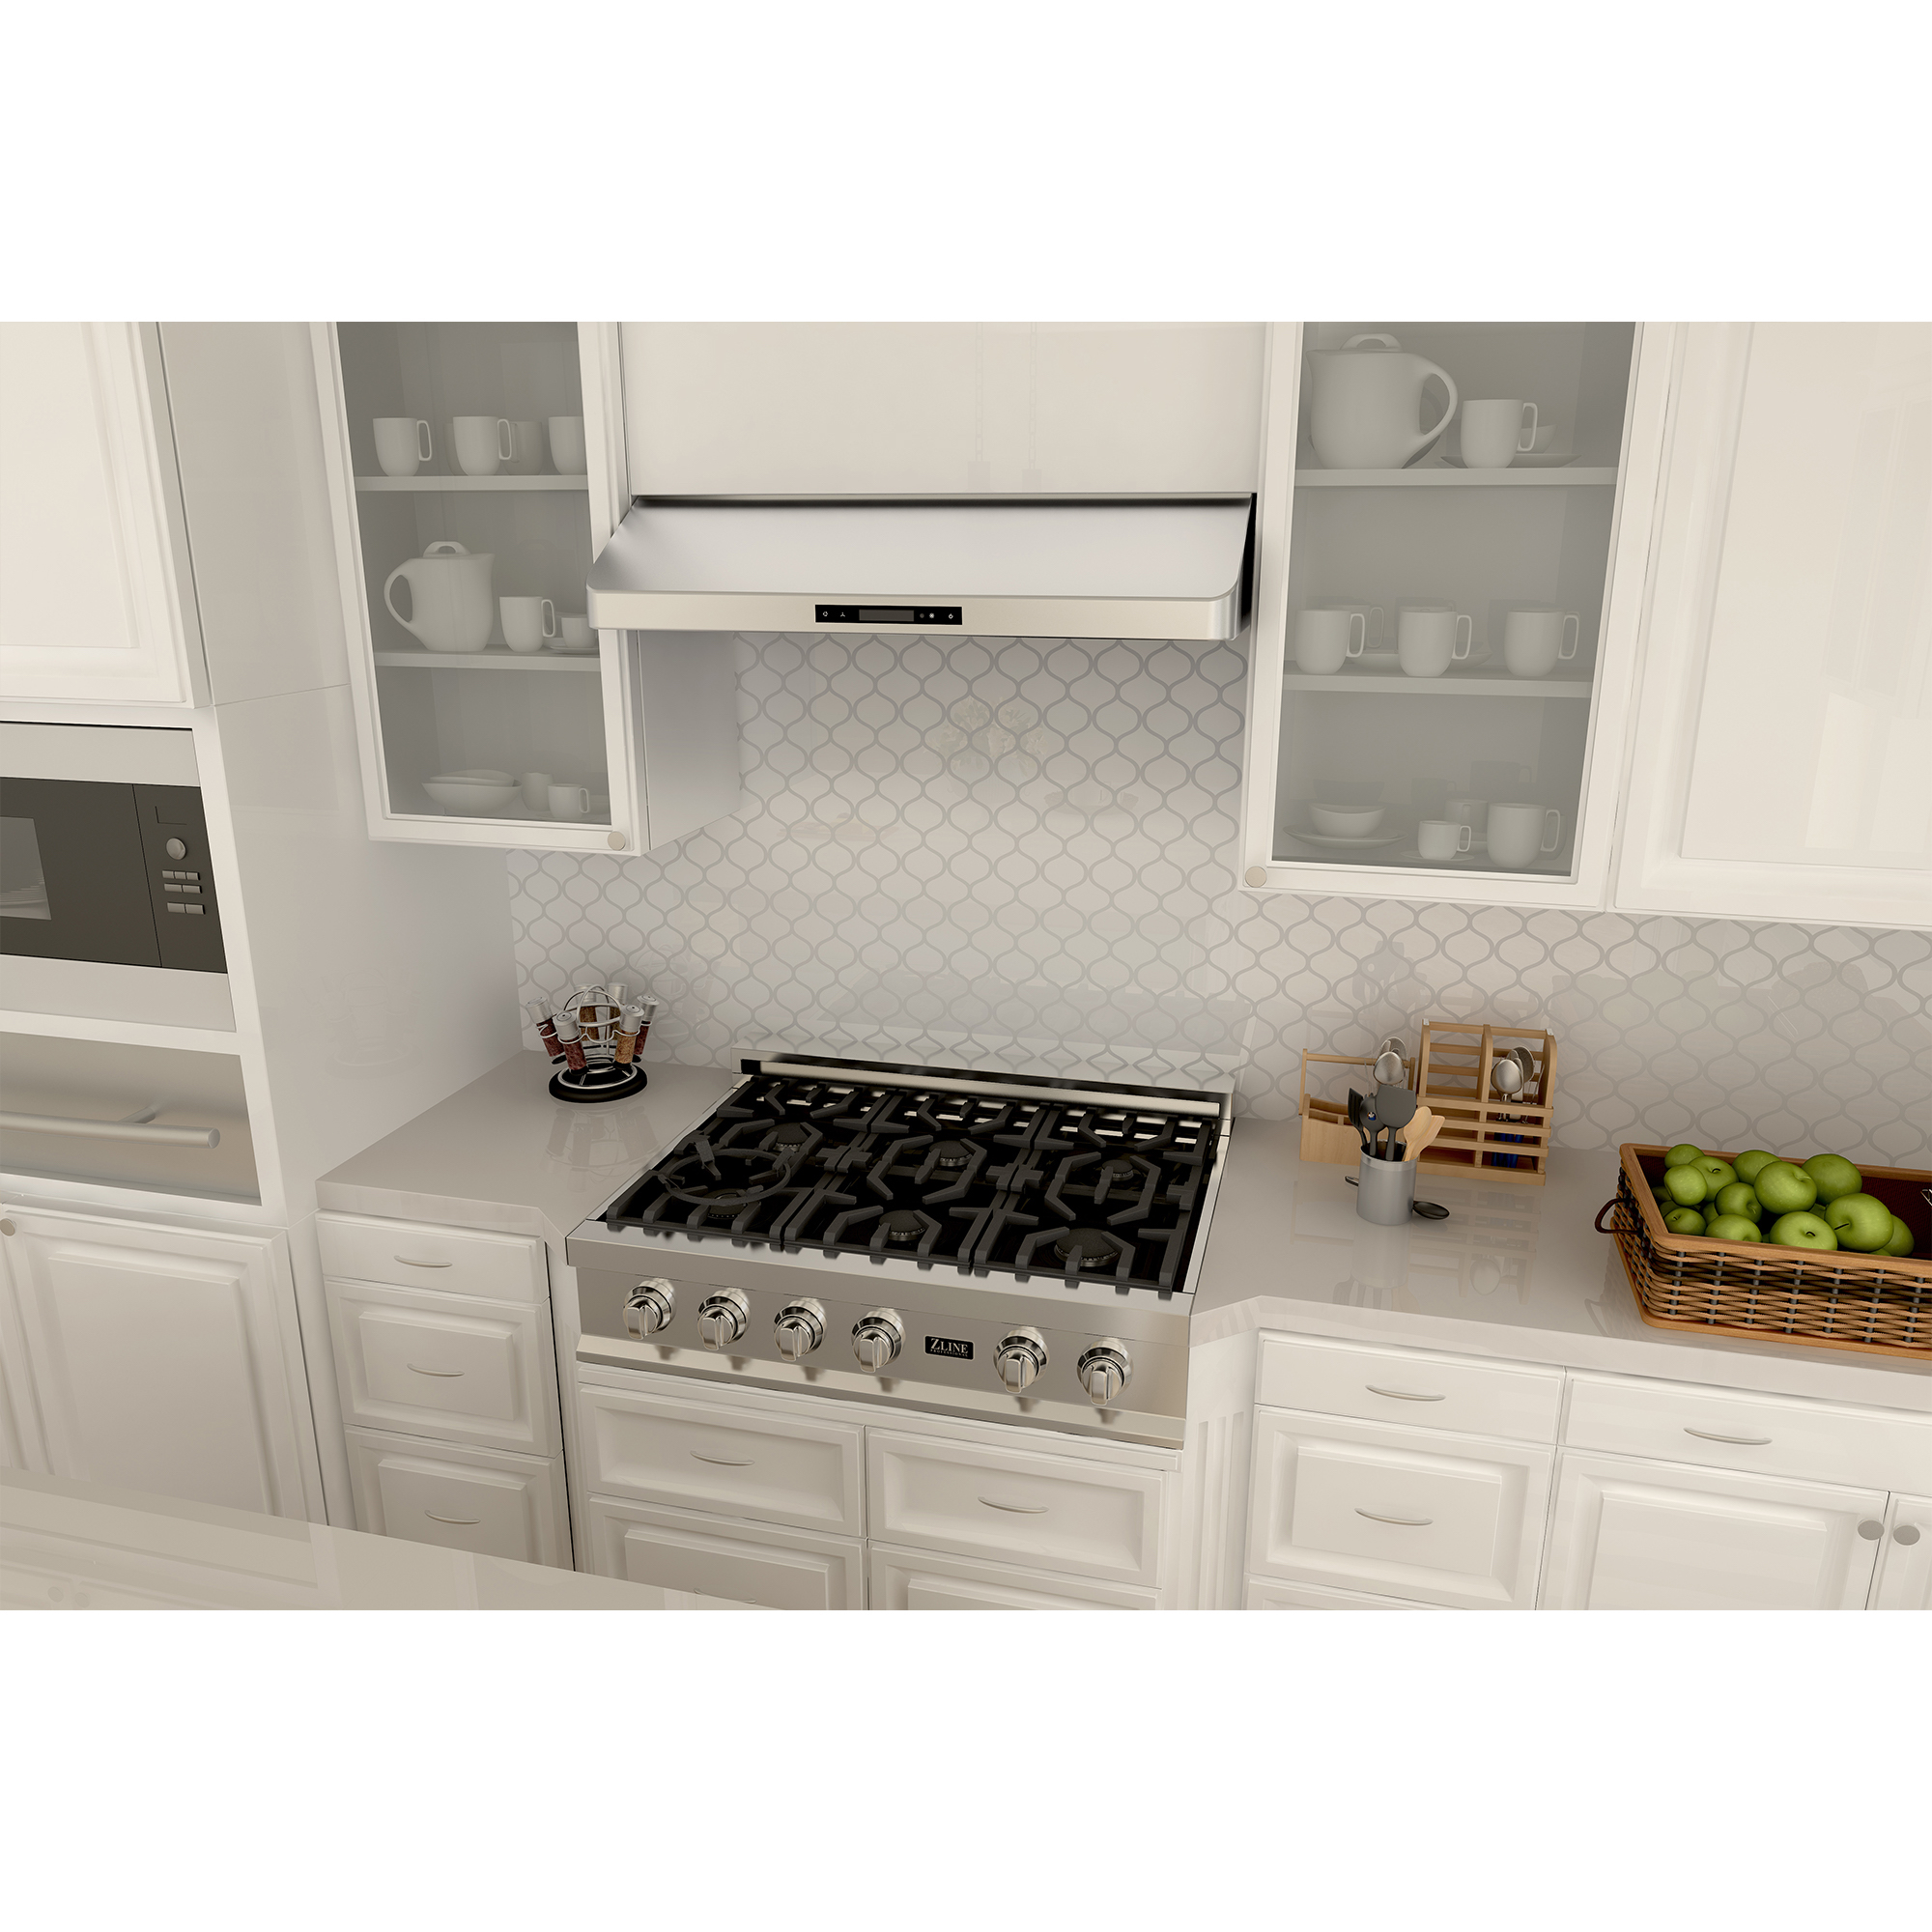 zline-stainless-steel-under-cabinet-range-hood-619-kitchen-updated.jpg